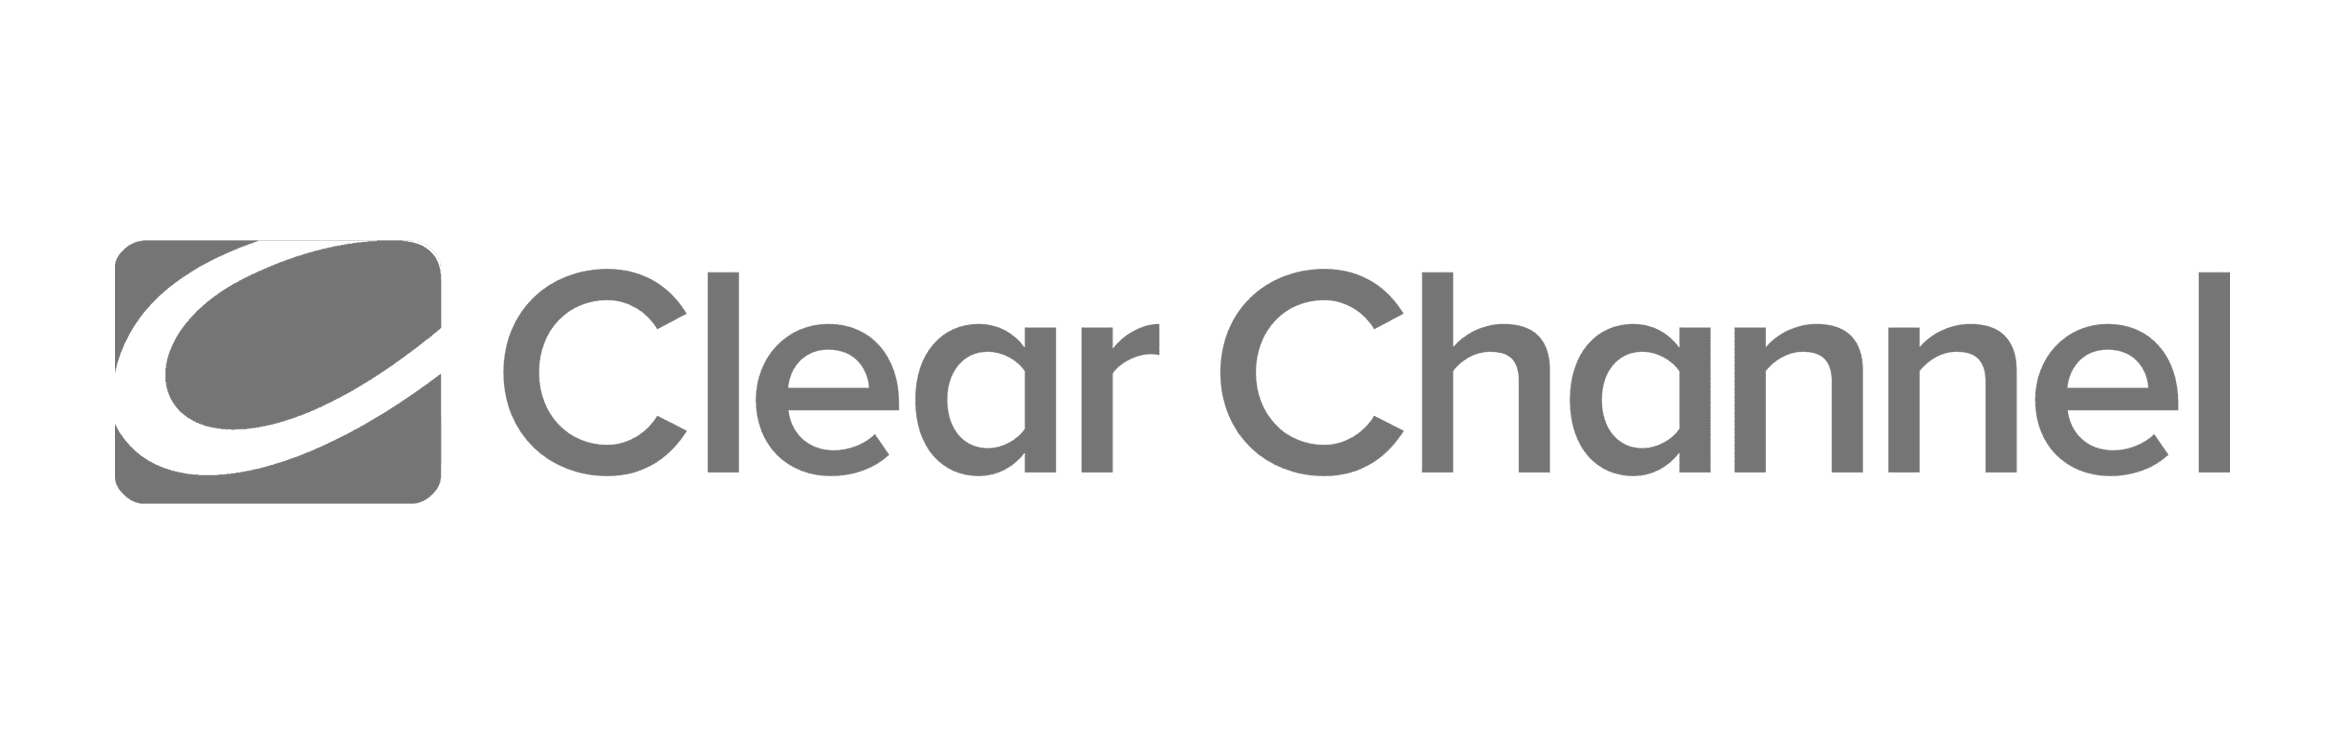 cleachannel